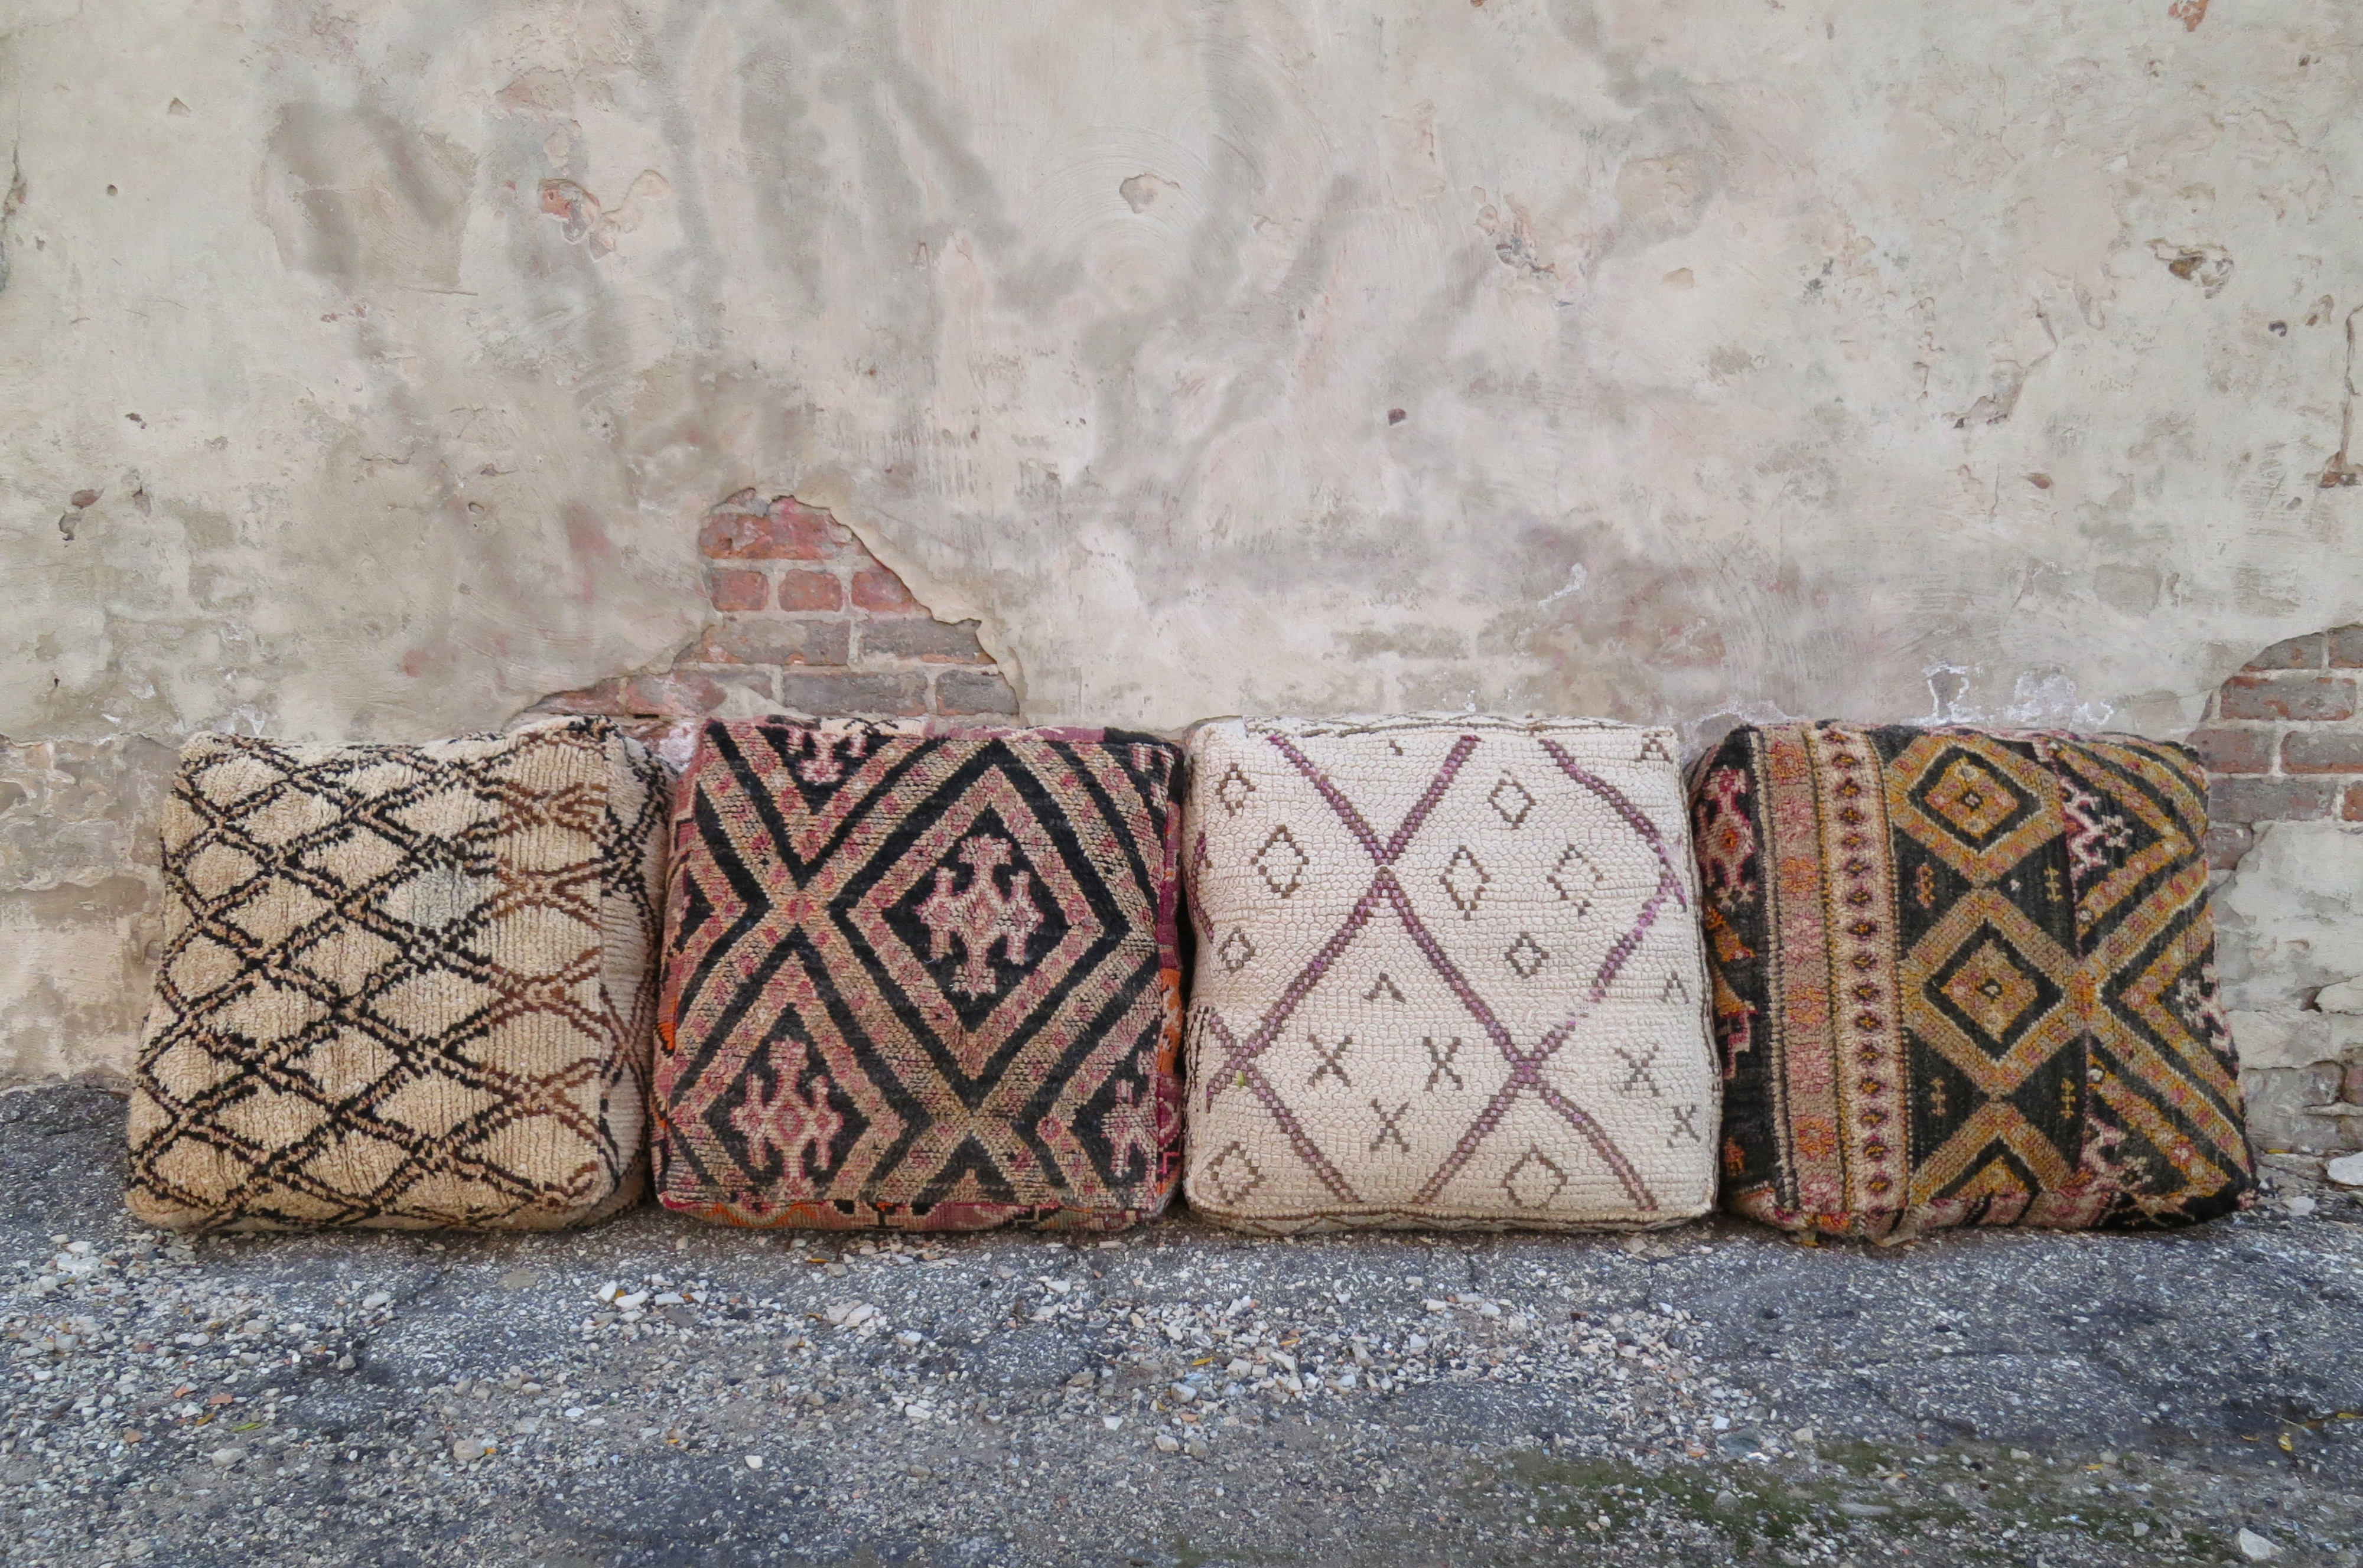 cushions diy inspirations moroccan floor batik breathtaking for ikea image about ideas room seat pillow cheap extra largefloor pillows also large with collection living best amazonfloor size of